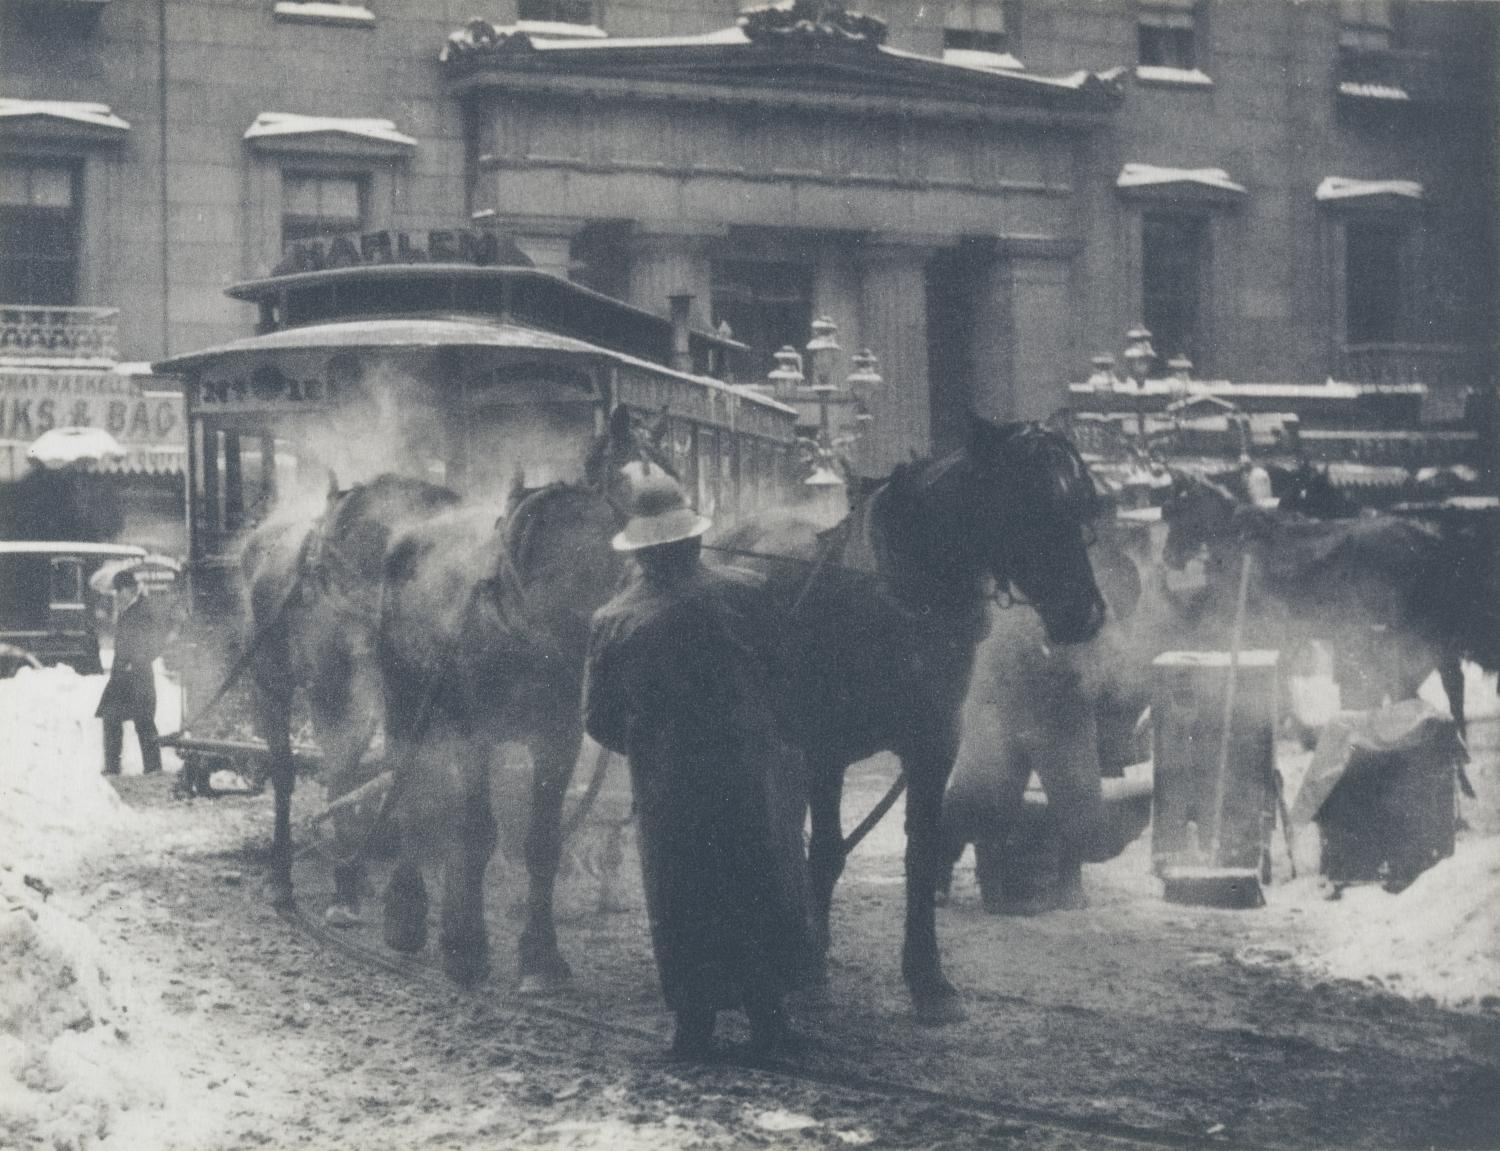 Alfred Stieglitz, The Terminal, 1893. Photogravure. Art Acquisition Fund 1990-3-1